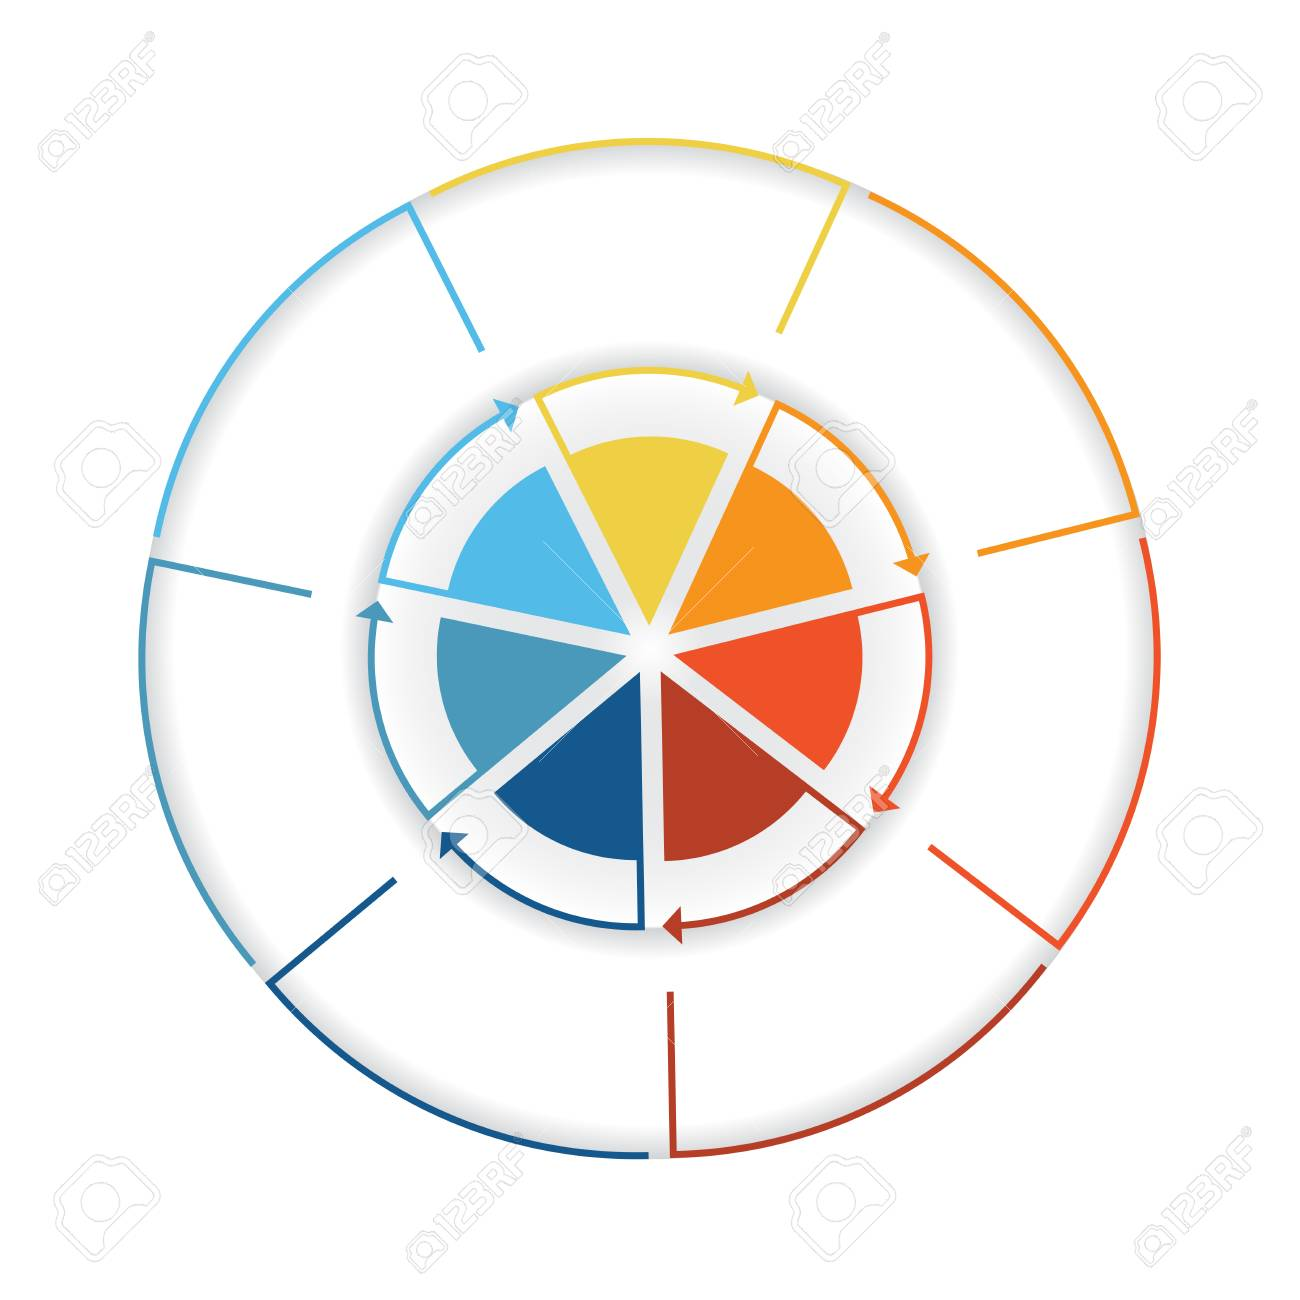 Arrows from colourful lines around circle template infographic arrows from colourful lines around circle template infographic seven position pie chart foto de nvjuhfo Choice Image